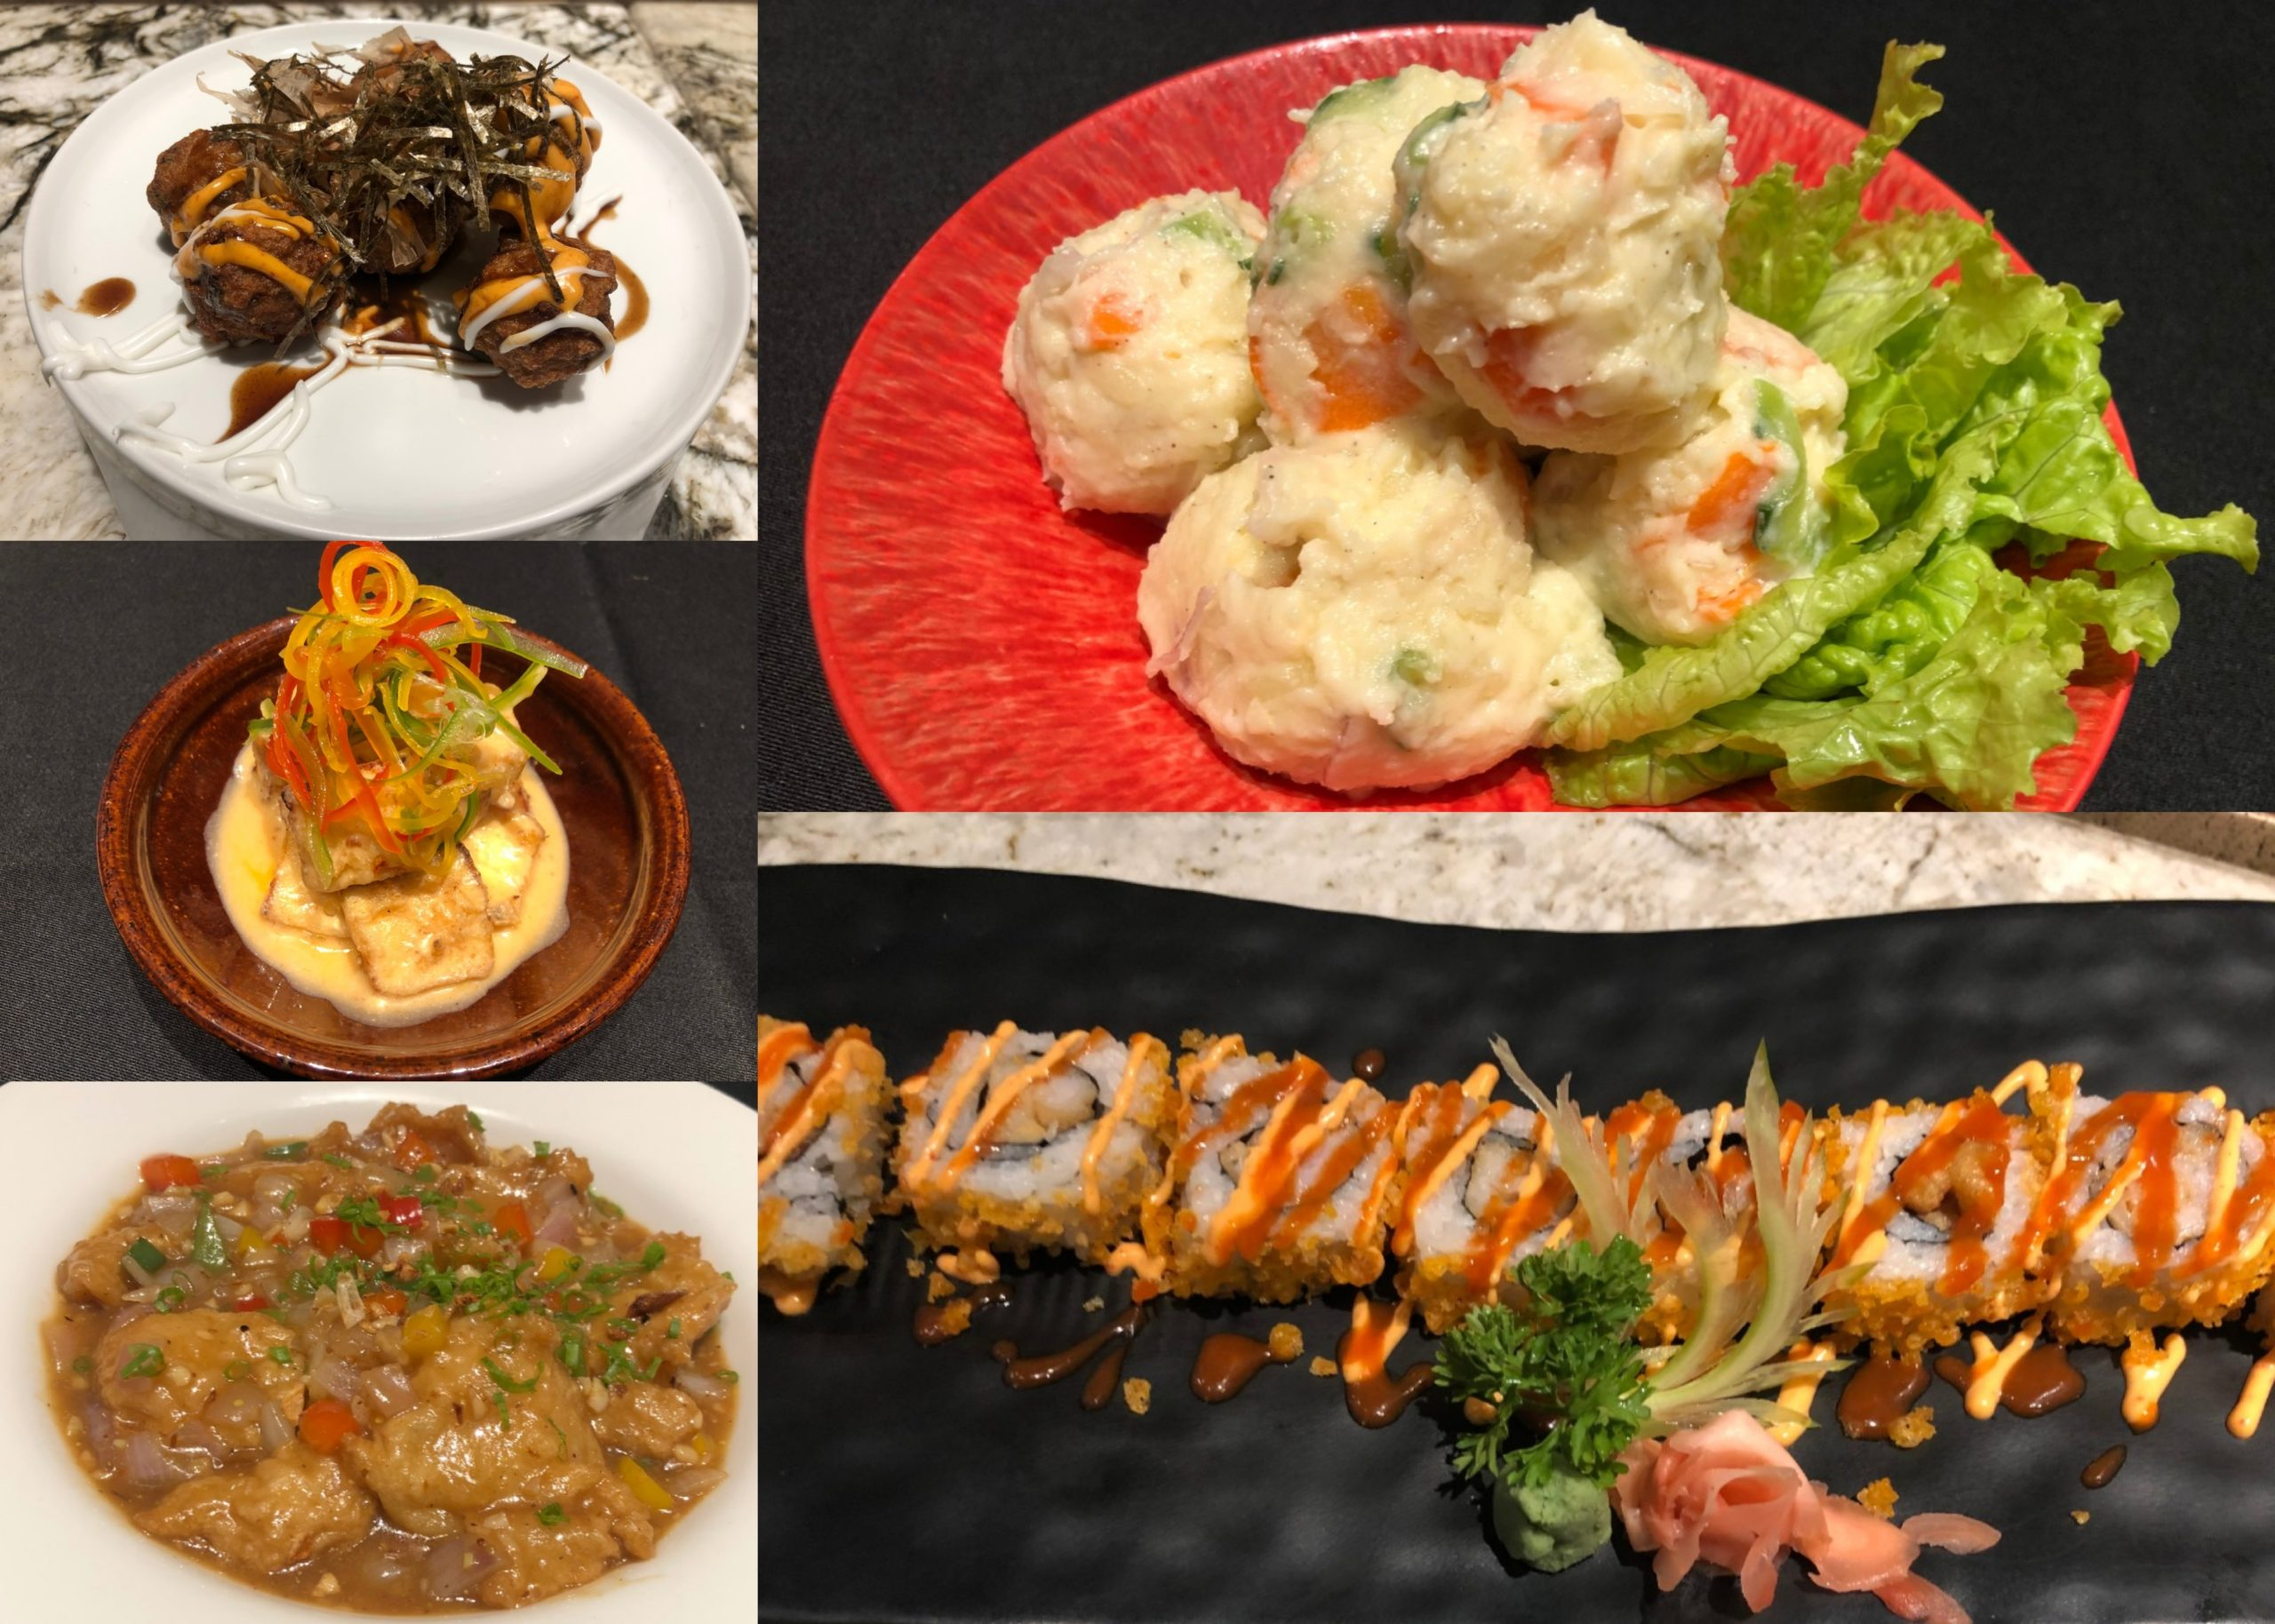 AAJISAI CELEBRATES ITS 2ND YEAR ANNIVERSARY WITH A GRAND MENU